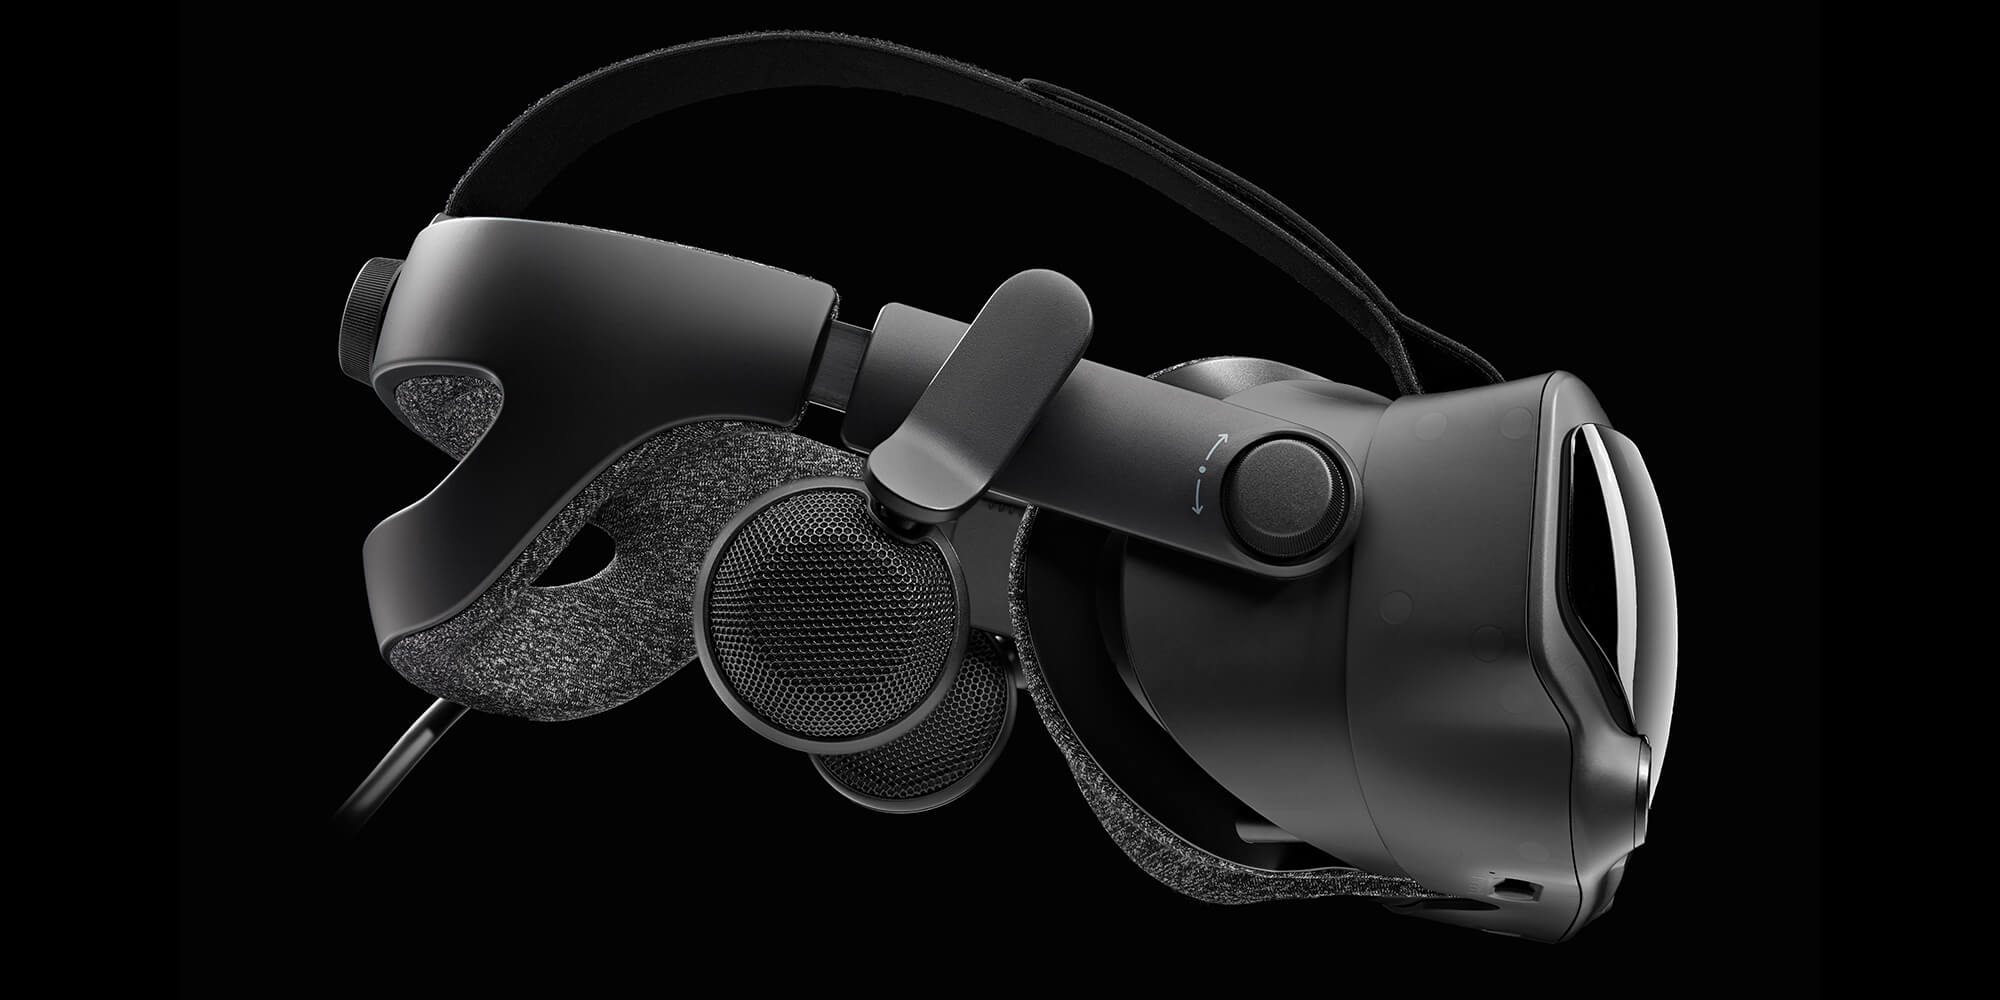 Valve Index VR Headset: 1440×1600 per Eye and 120/144 Hz LCDs